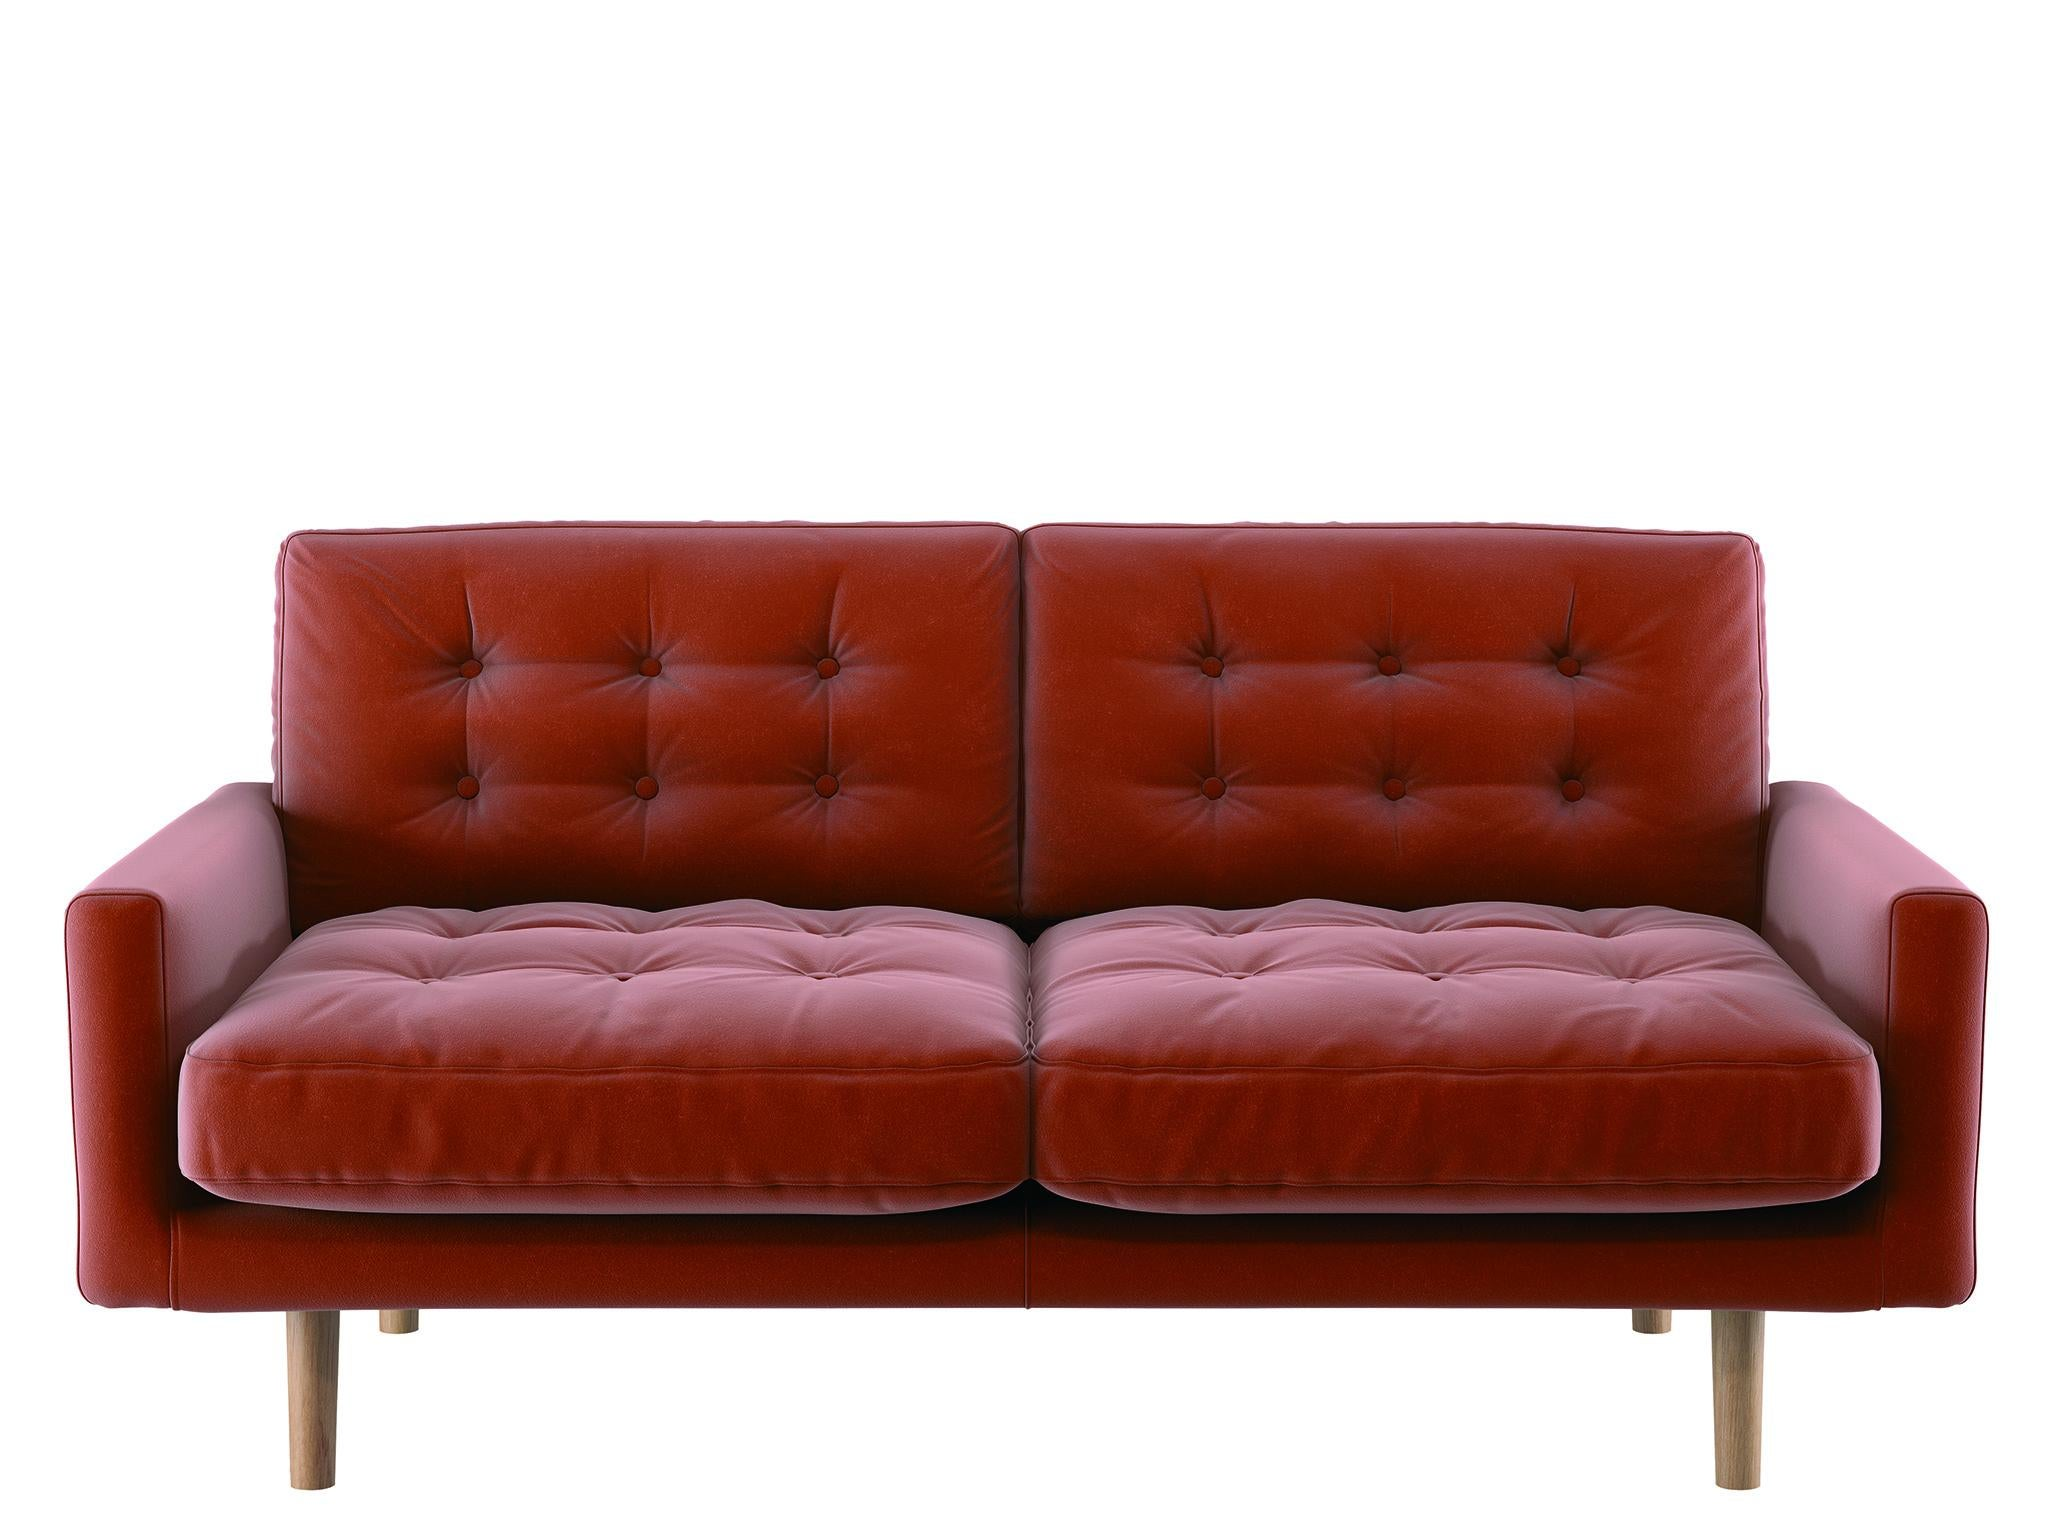 8 Best Two Seater Sofas The Independent